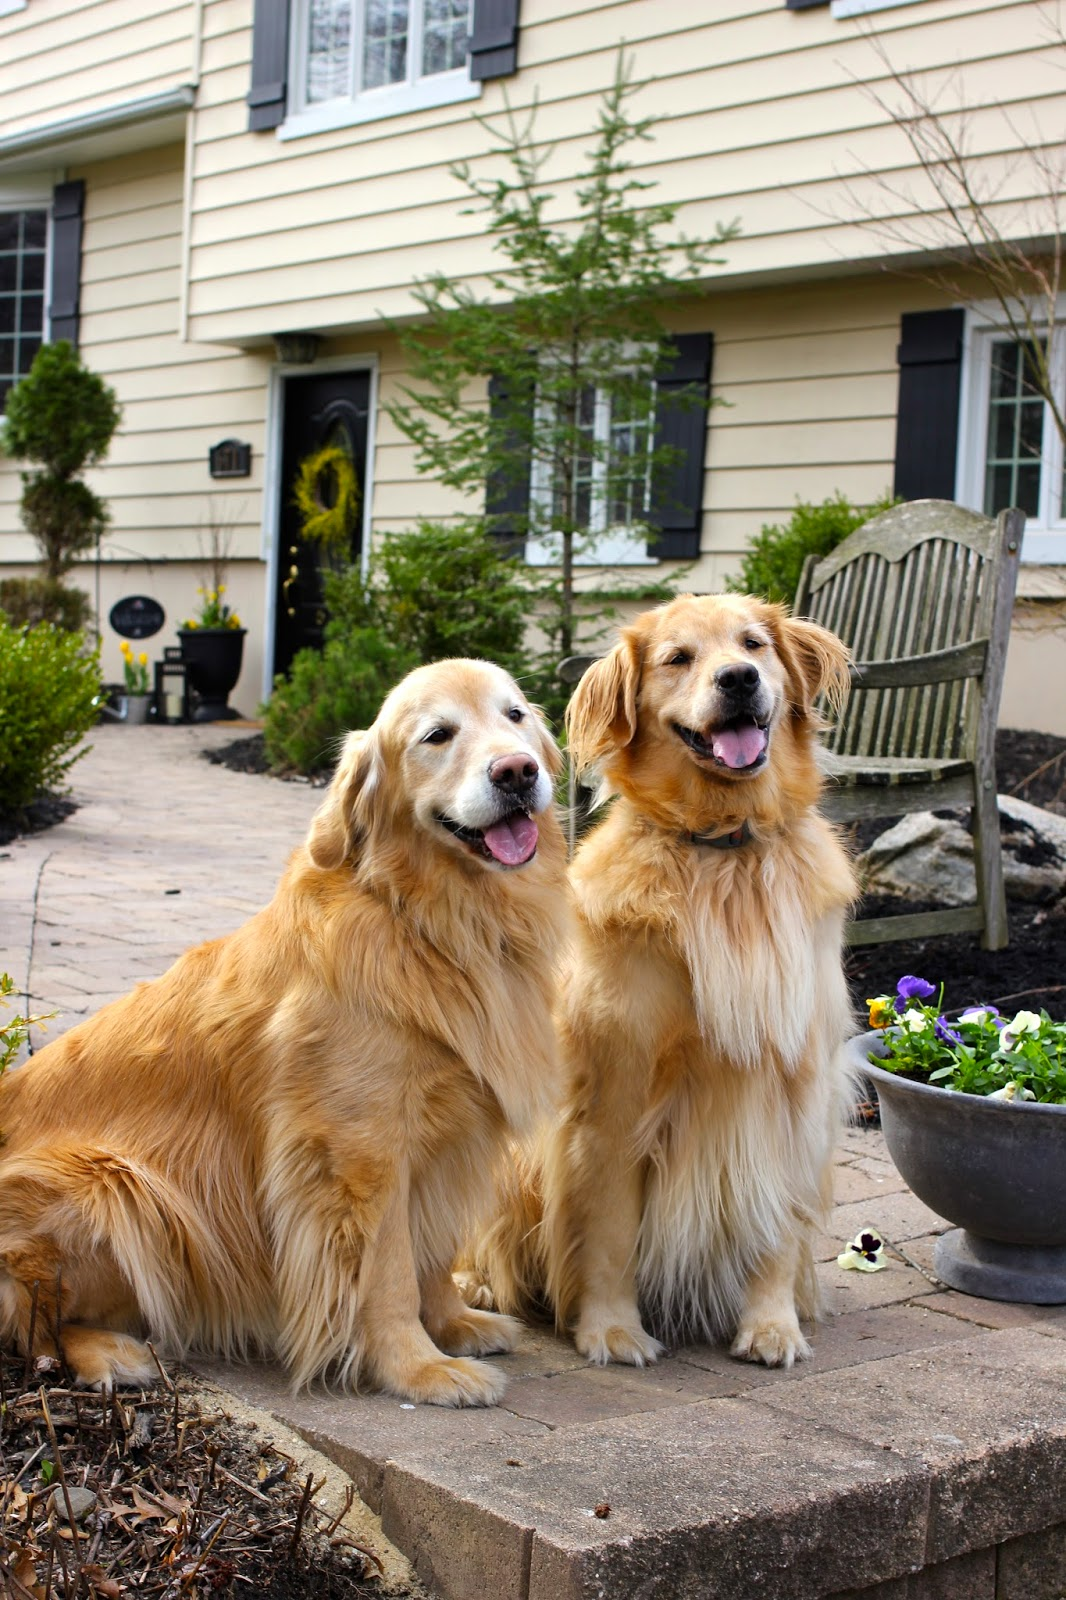 Golden retrievers in spring-www.goldenboysandme.com